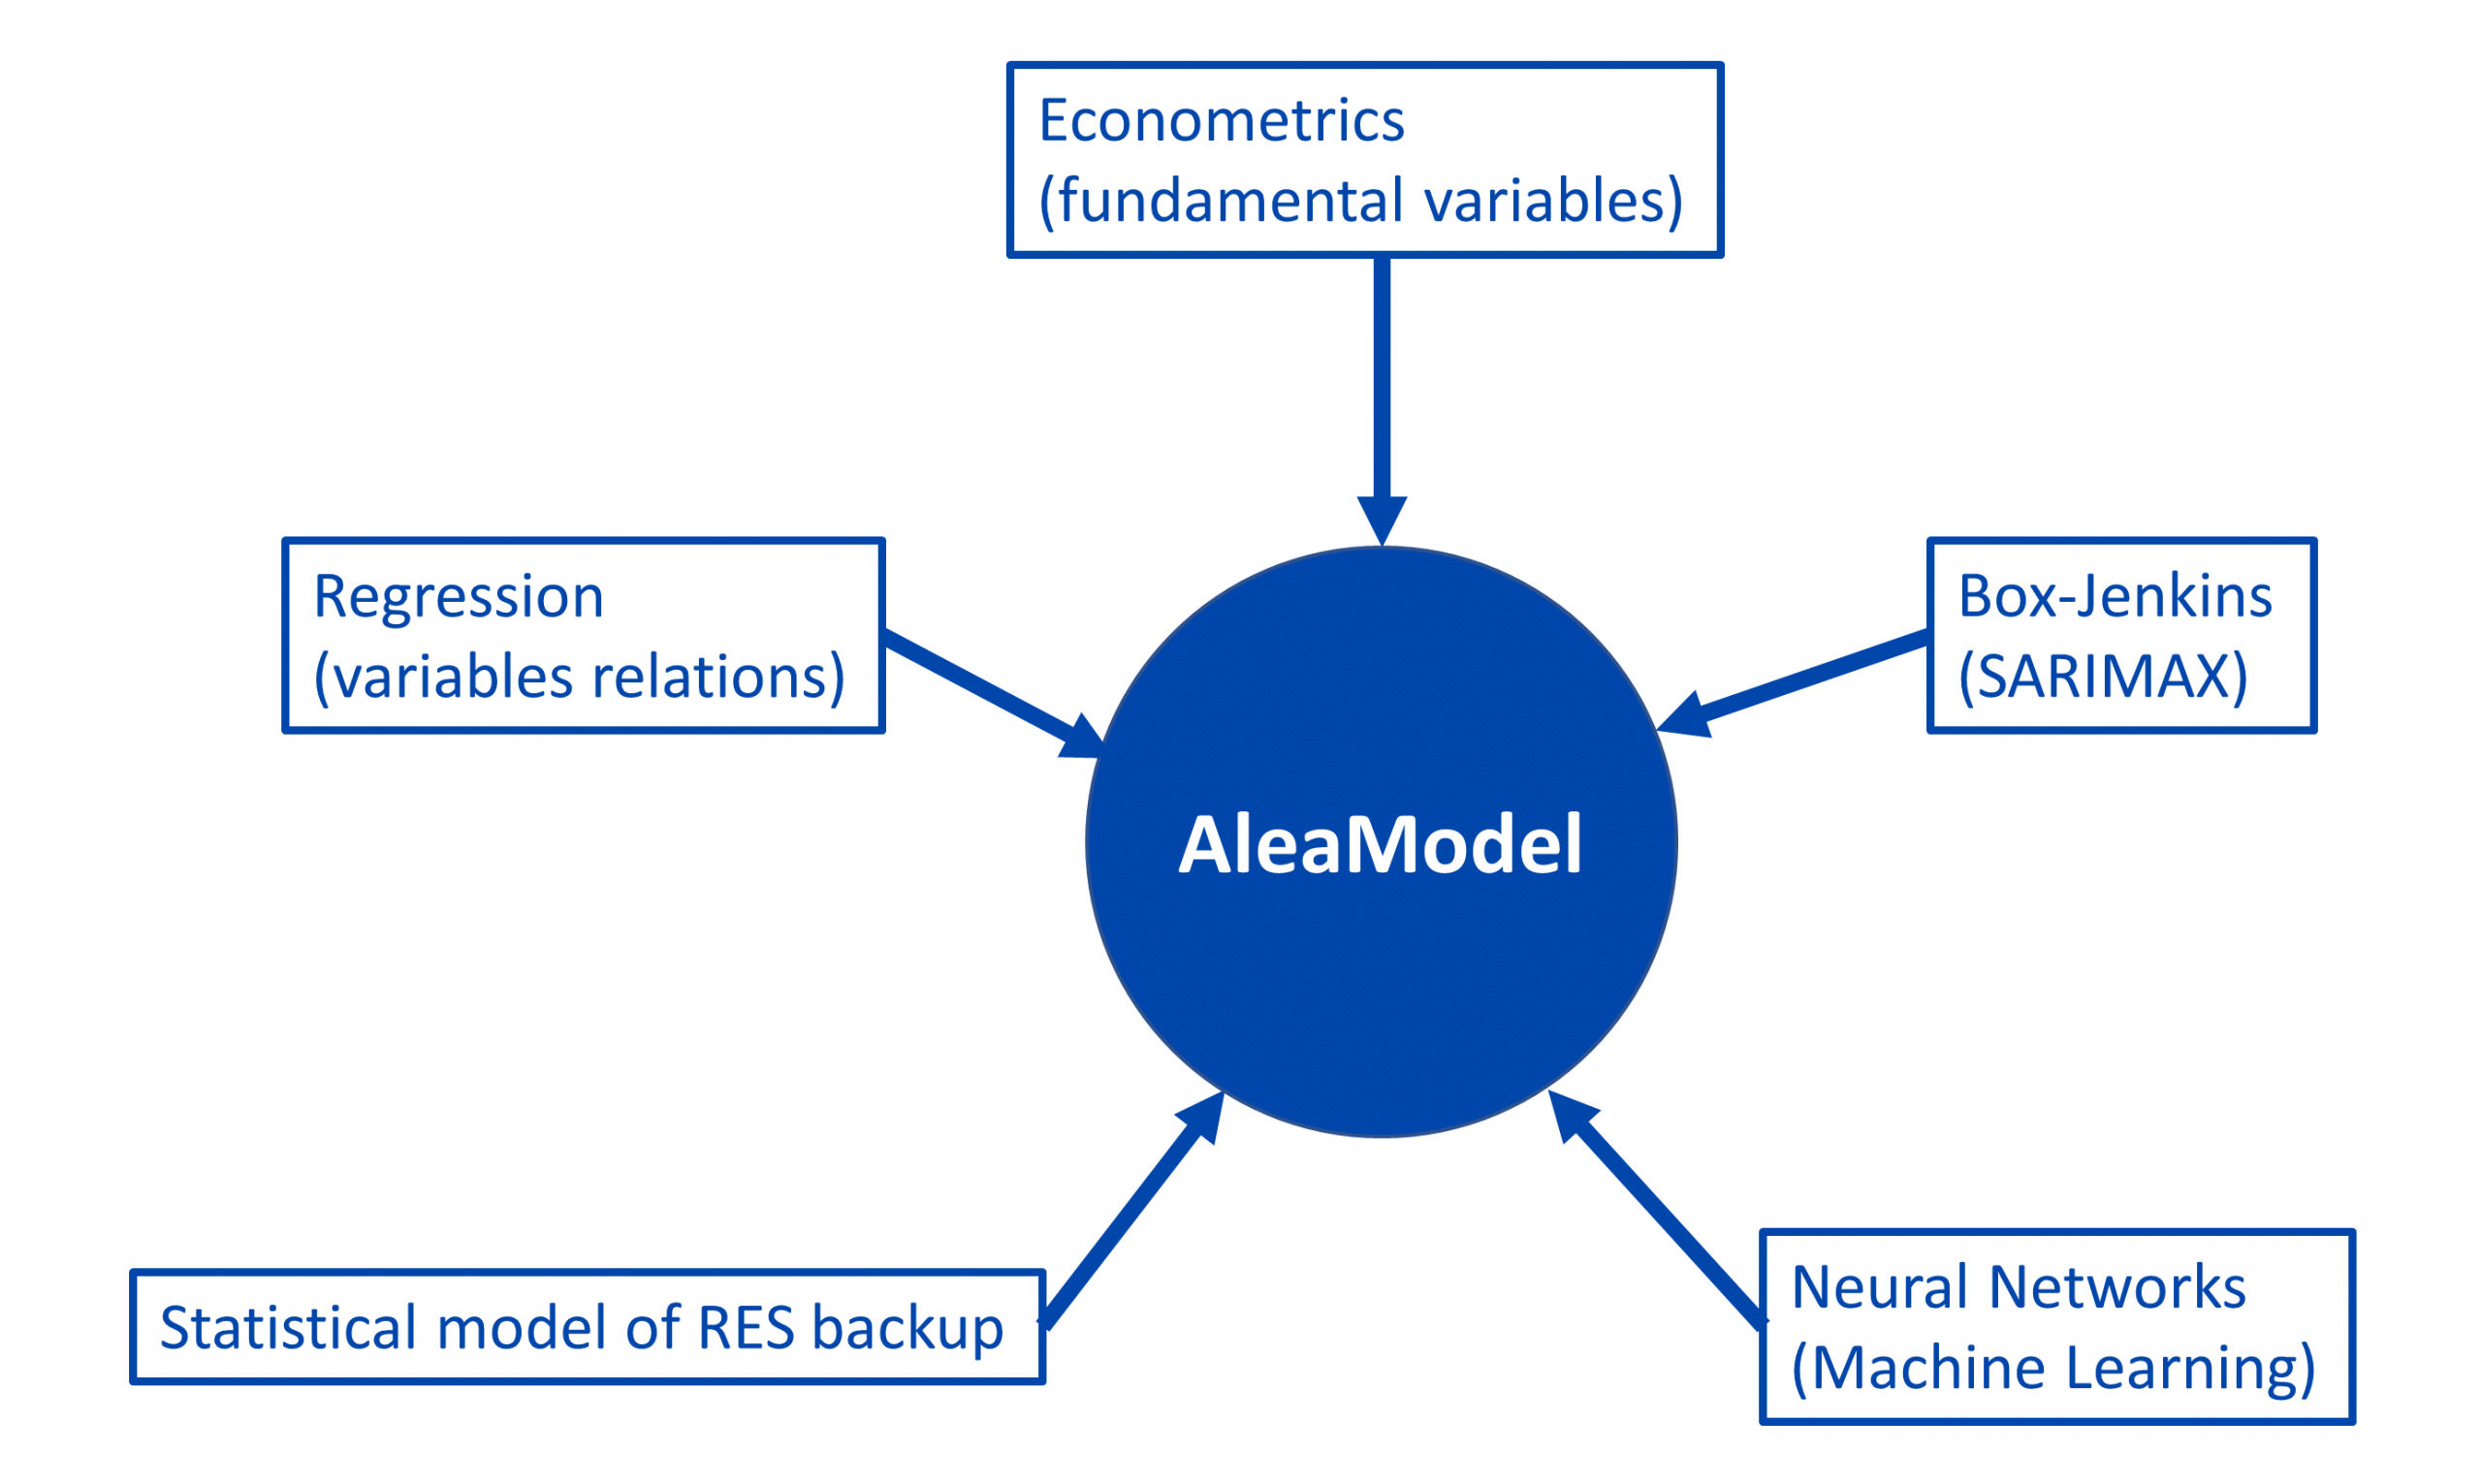 AleaSoft - Models and variables AleaModel